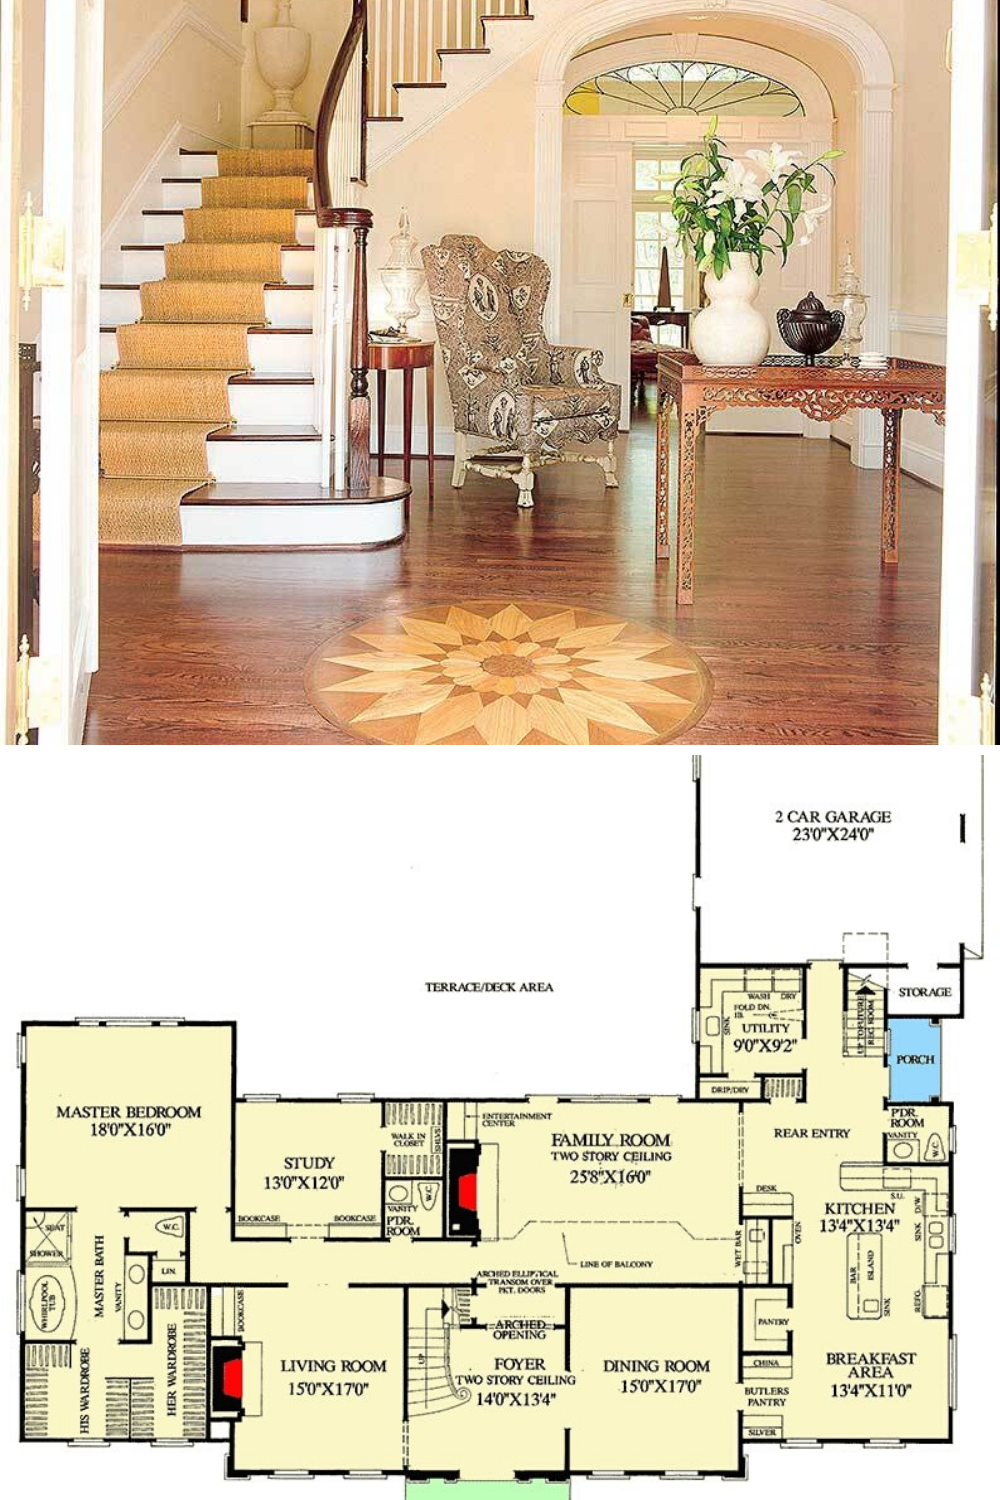 4 Bedroom Two Story Traditional Colonial Home Floor Plan